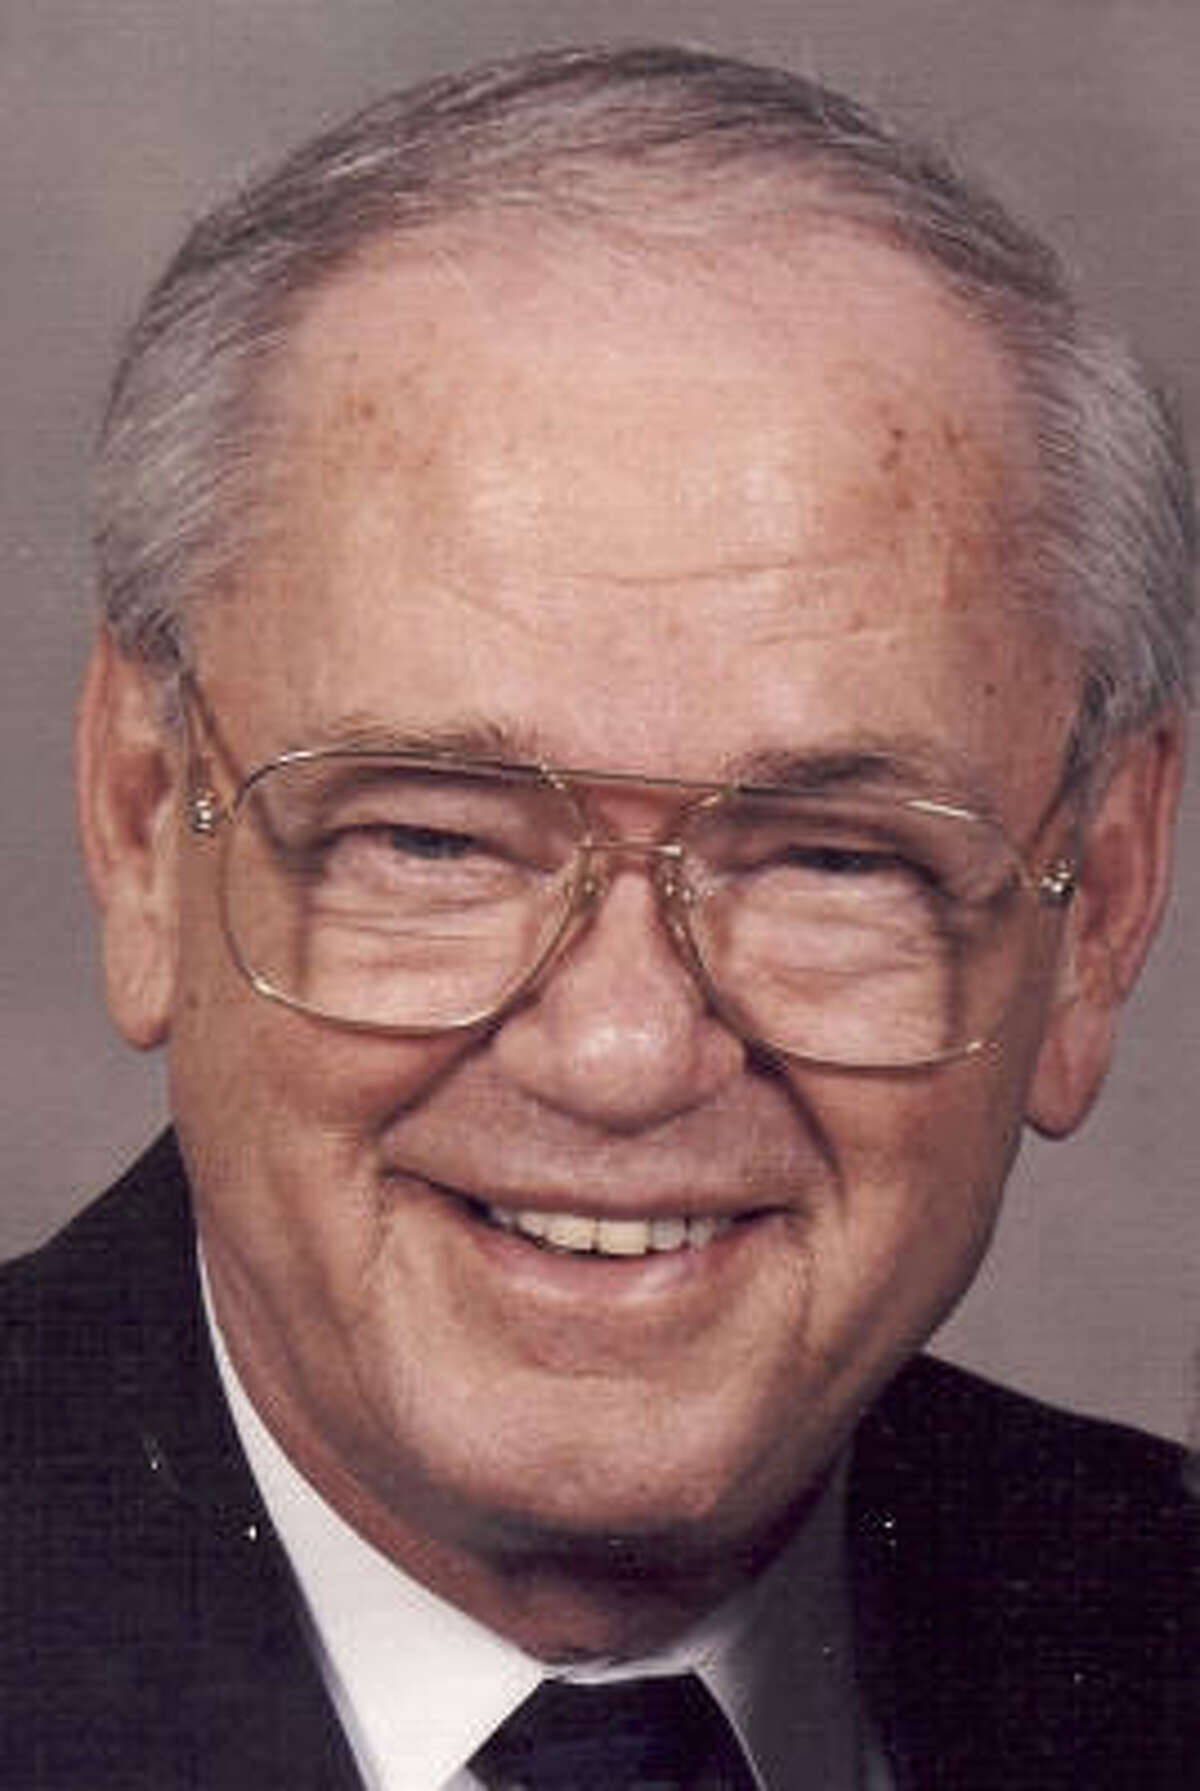 Donald Ray Carpenter spent several years as an administrative assistant for Harris County Commissioner Jim Fonteno.